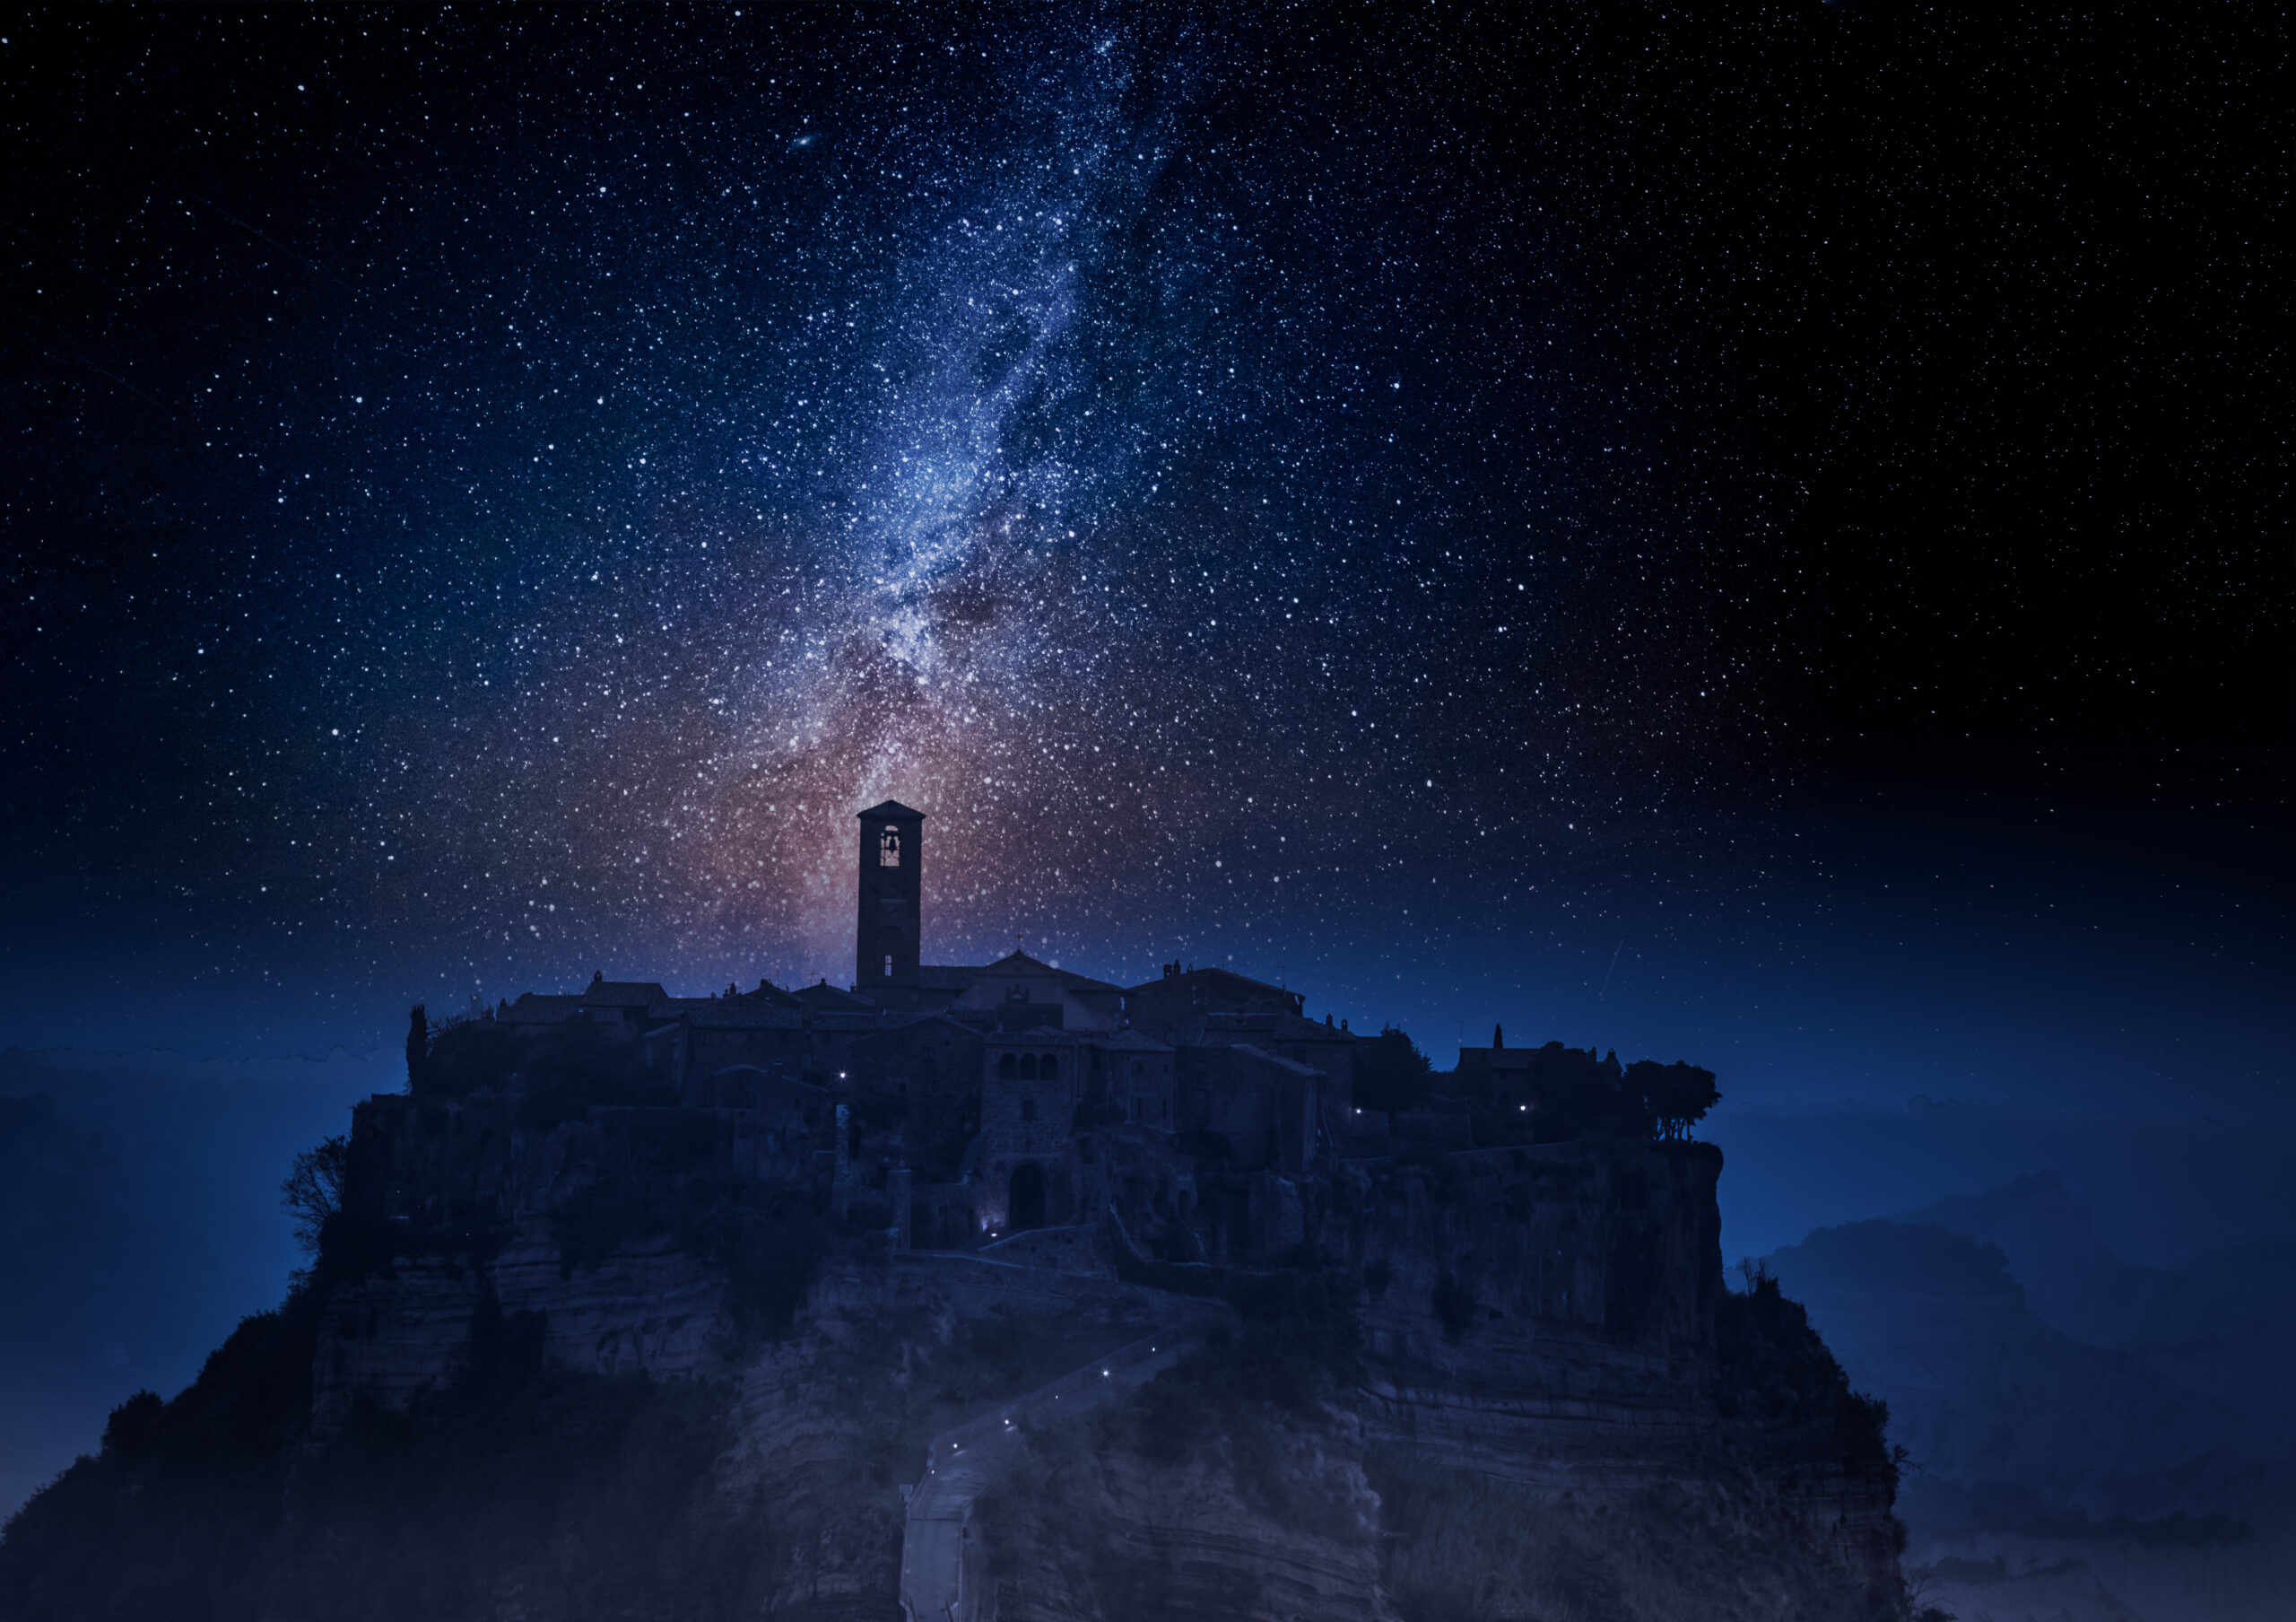 How to Photograph The Night Sky: Tips for Capturing Stars, The Moon and The Milky Way